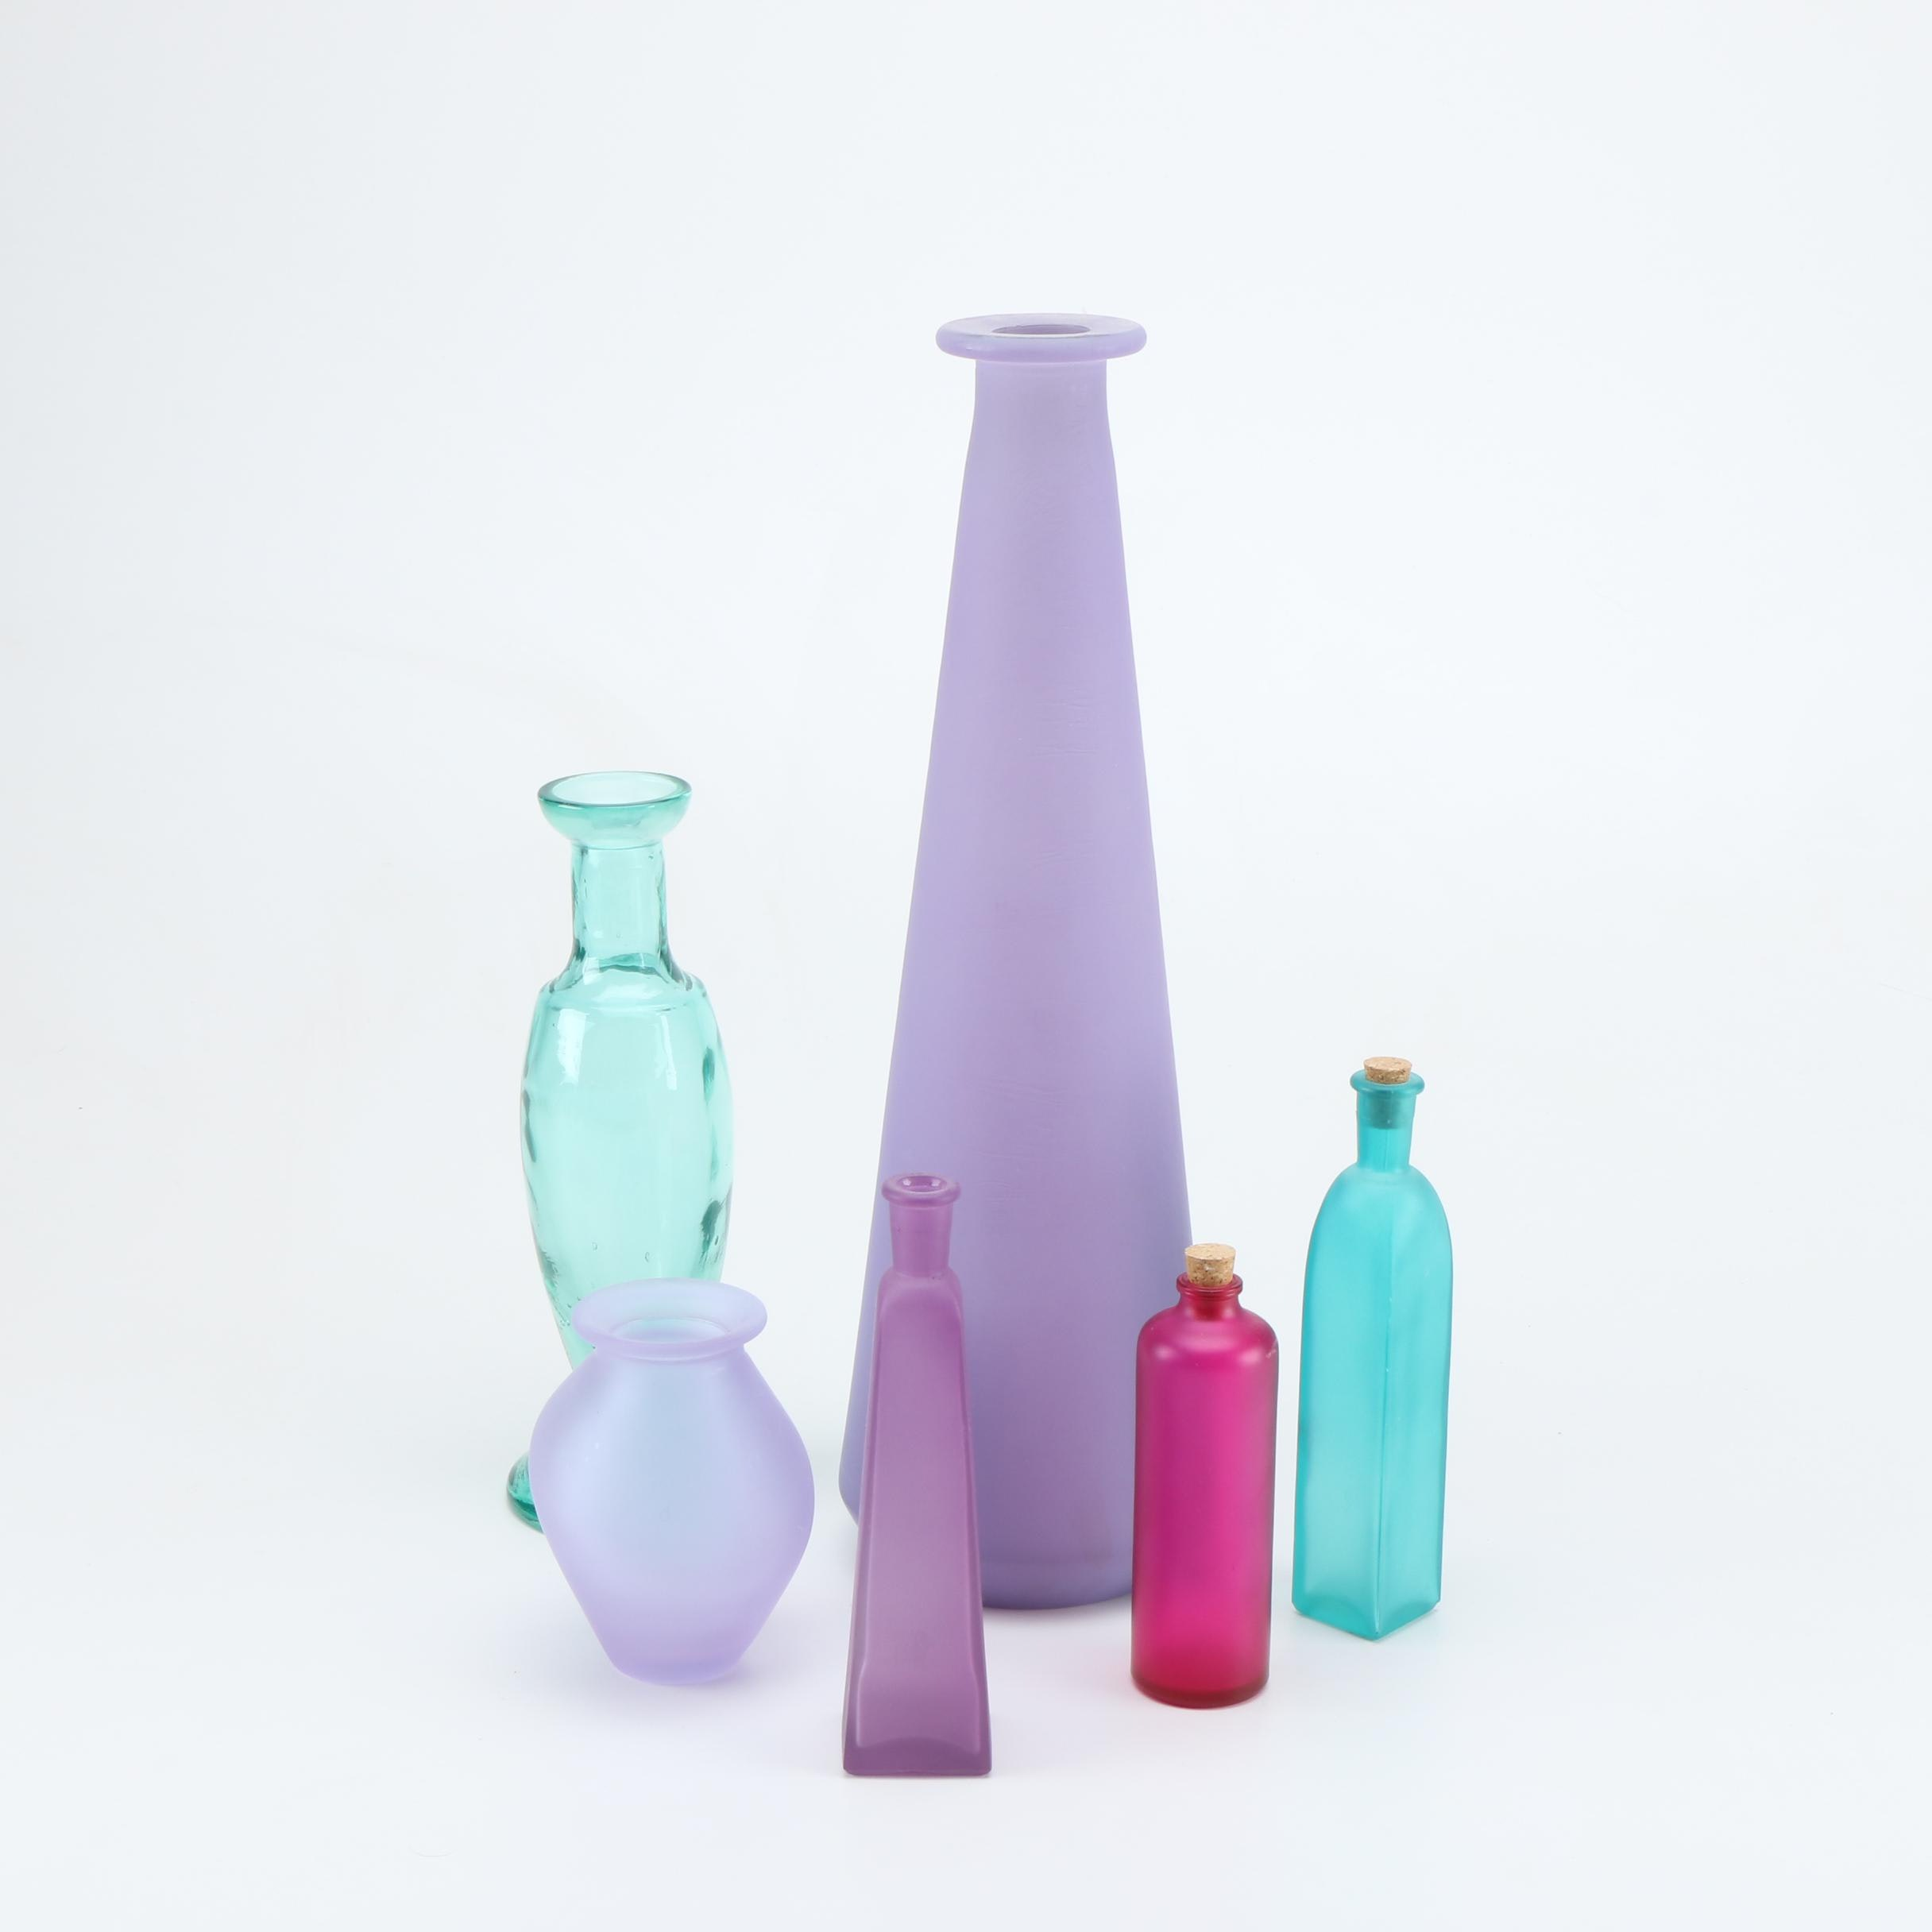 Set Of Colored Glass Vases and Bottles